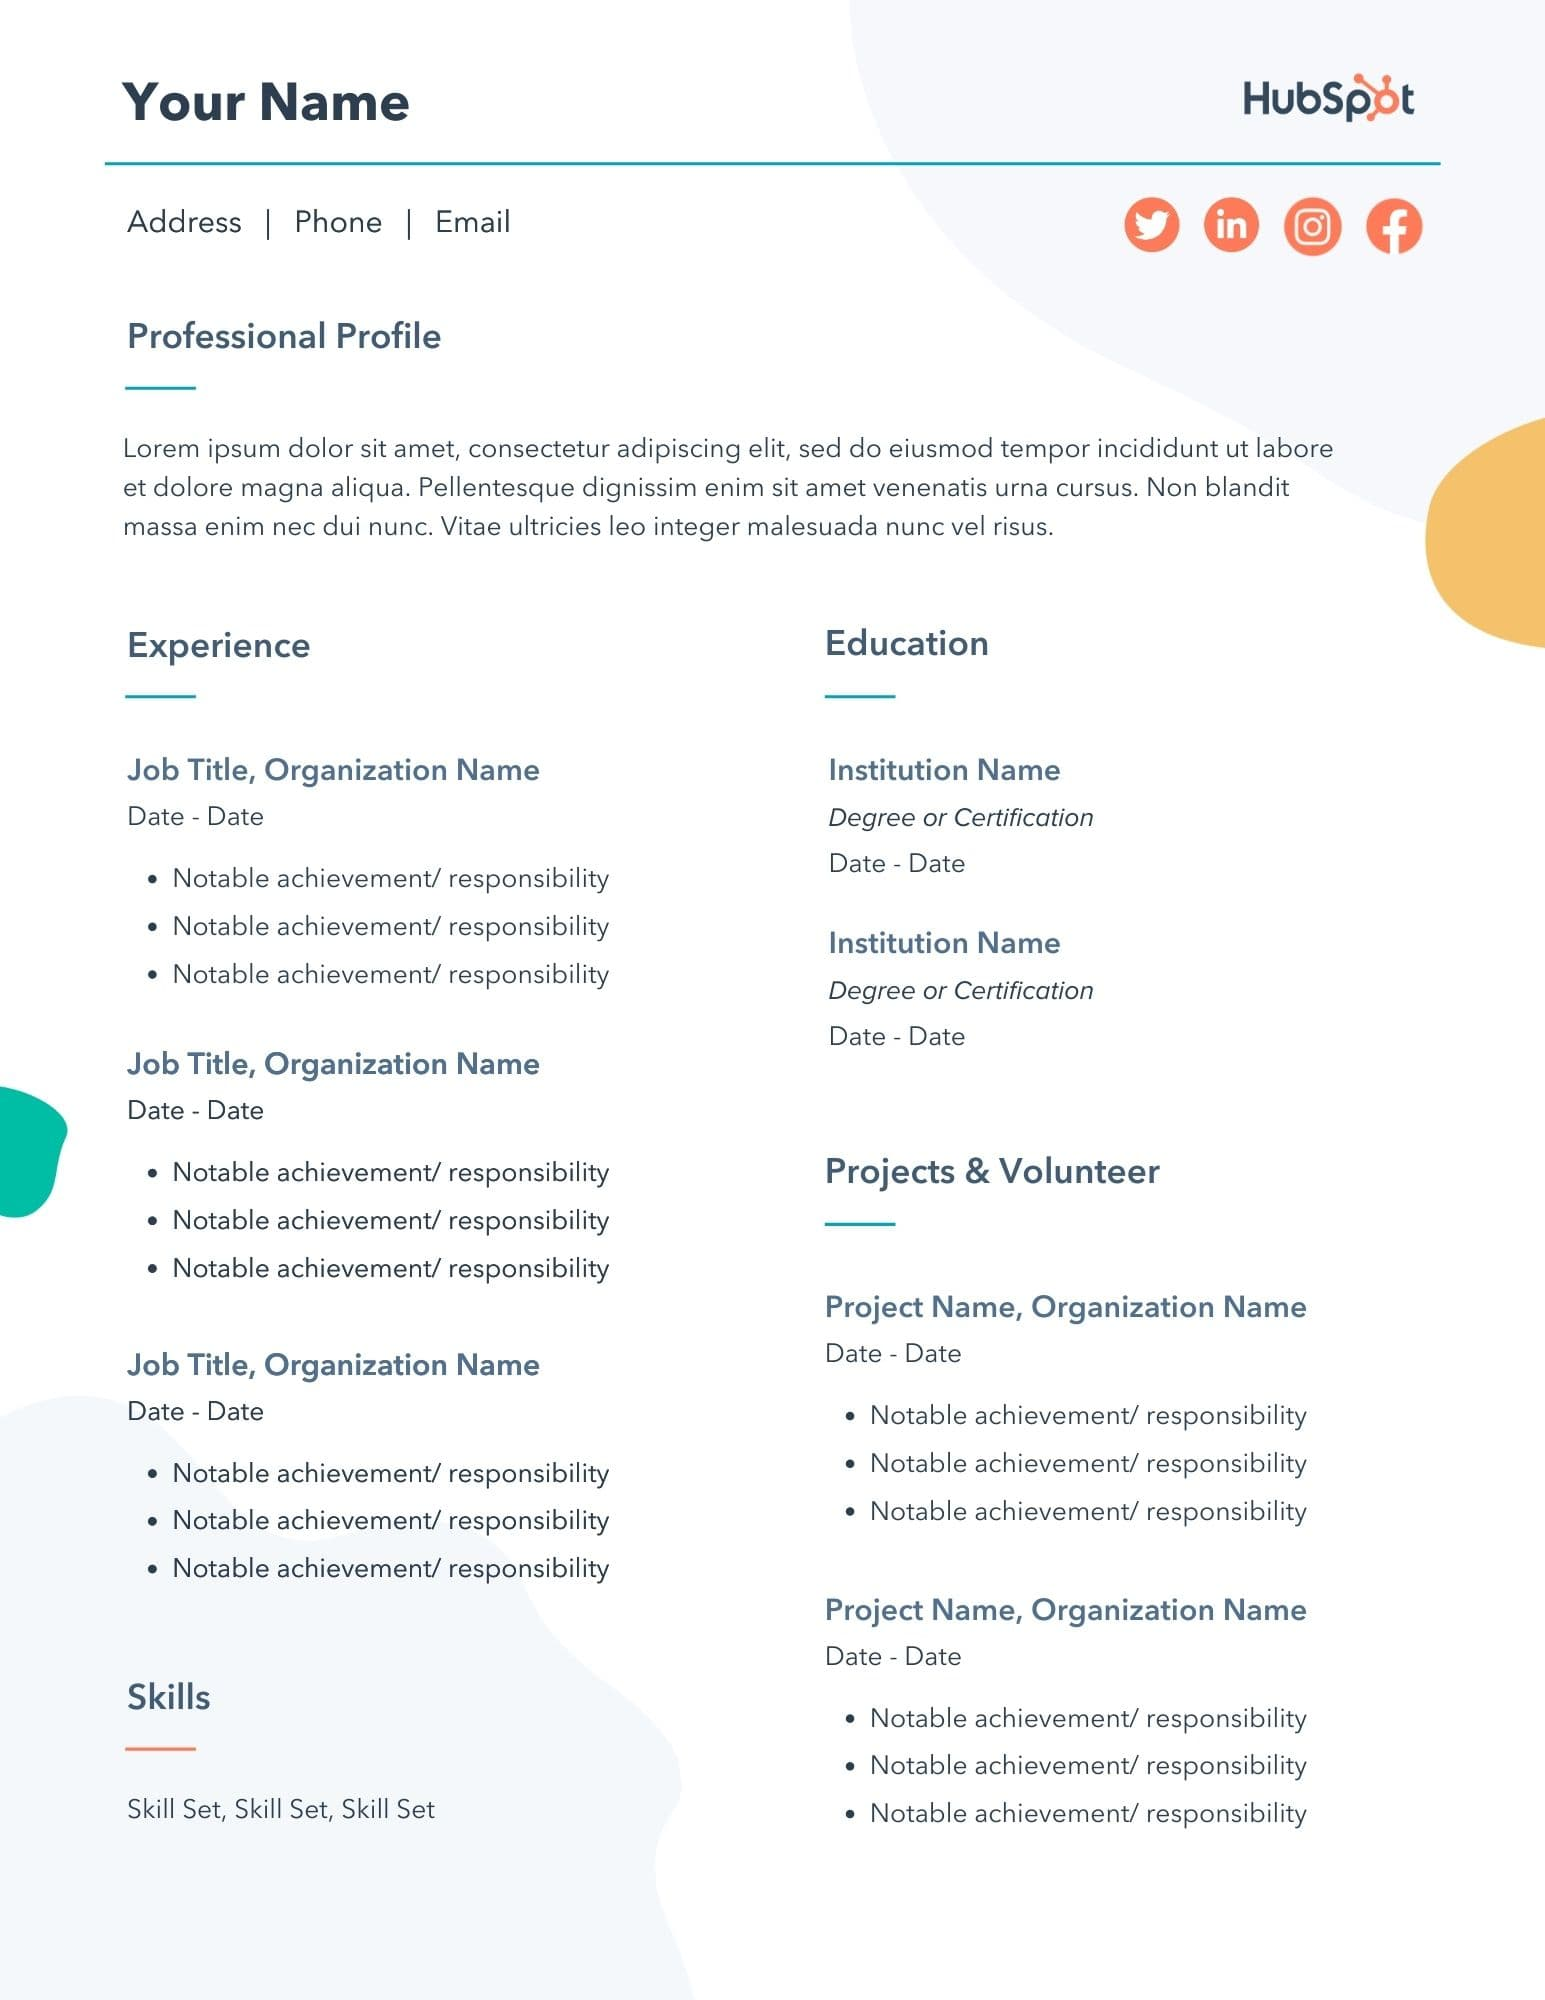 Extended cv is a free easy resume that can be used to apply for academic and research positions. 29 Free Resume Templates For Microsoft Word How To Make Your Own